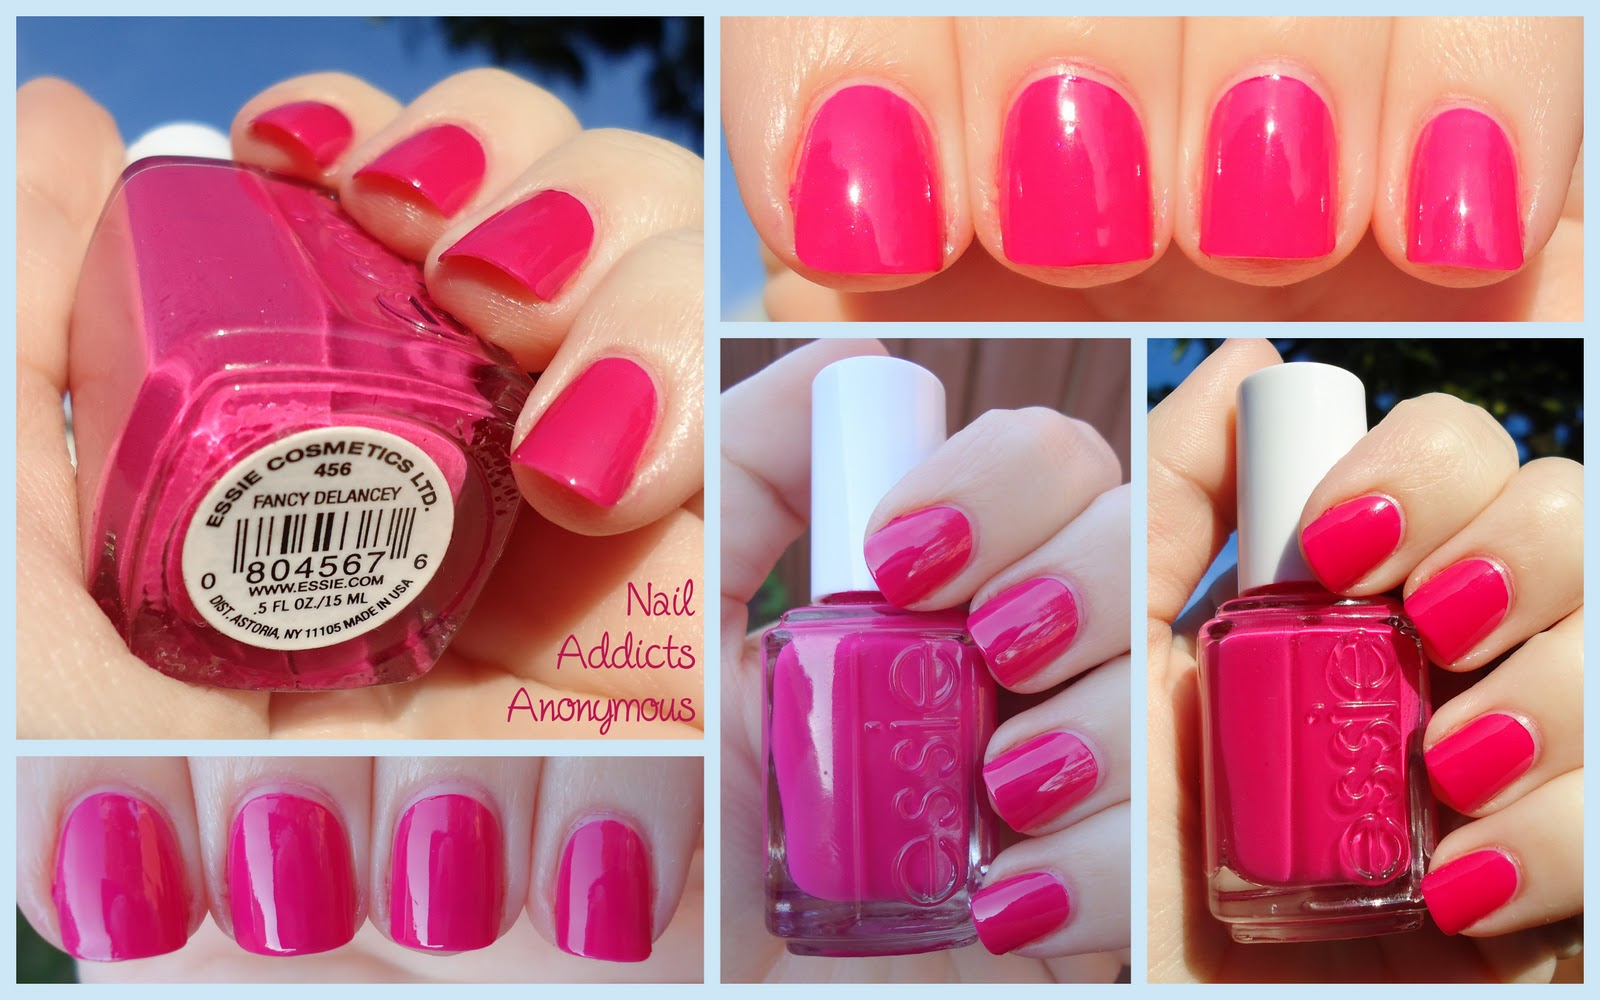 Nail Addicts Anonymous: February 2011